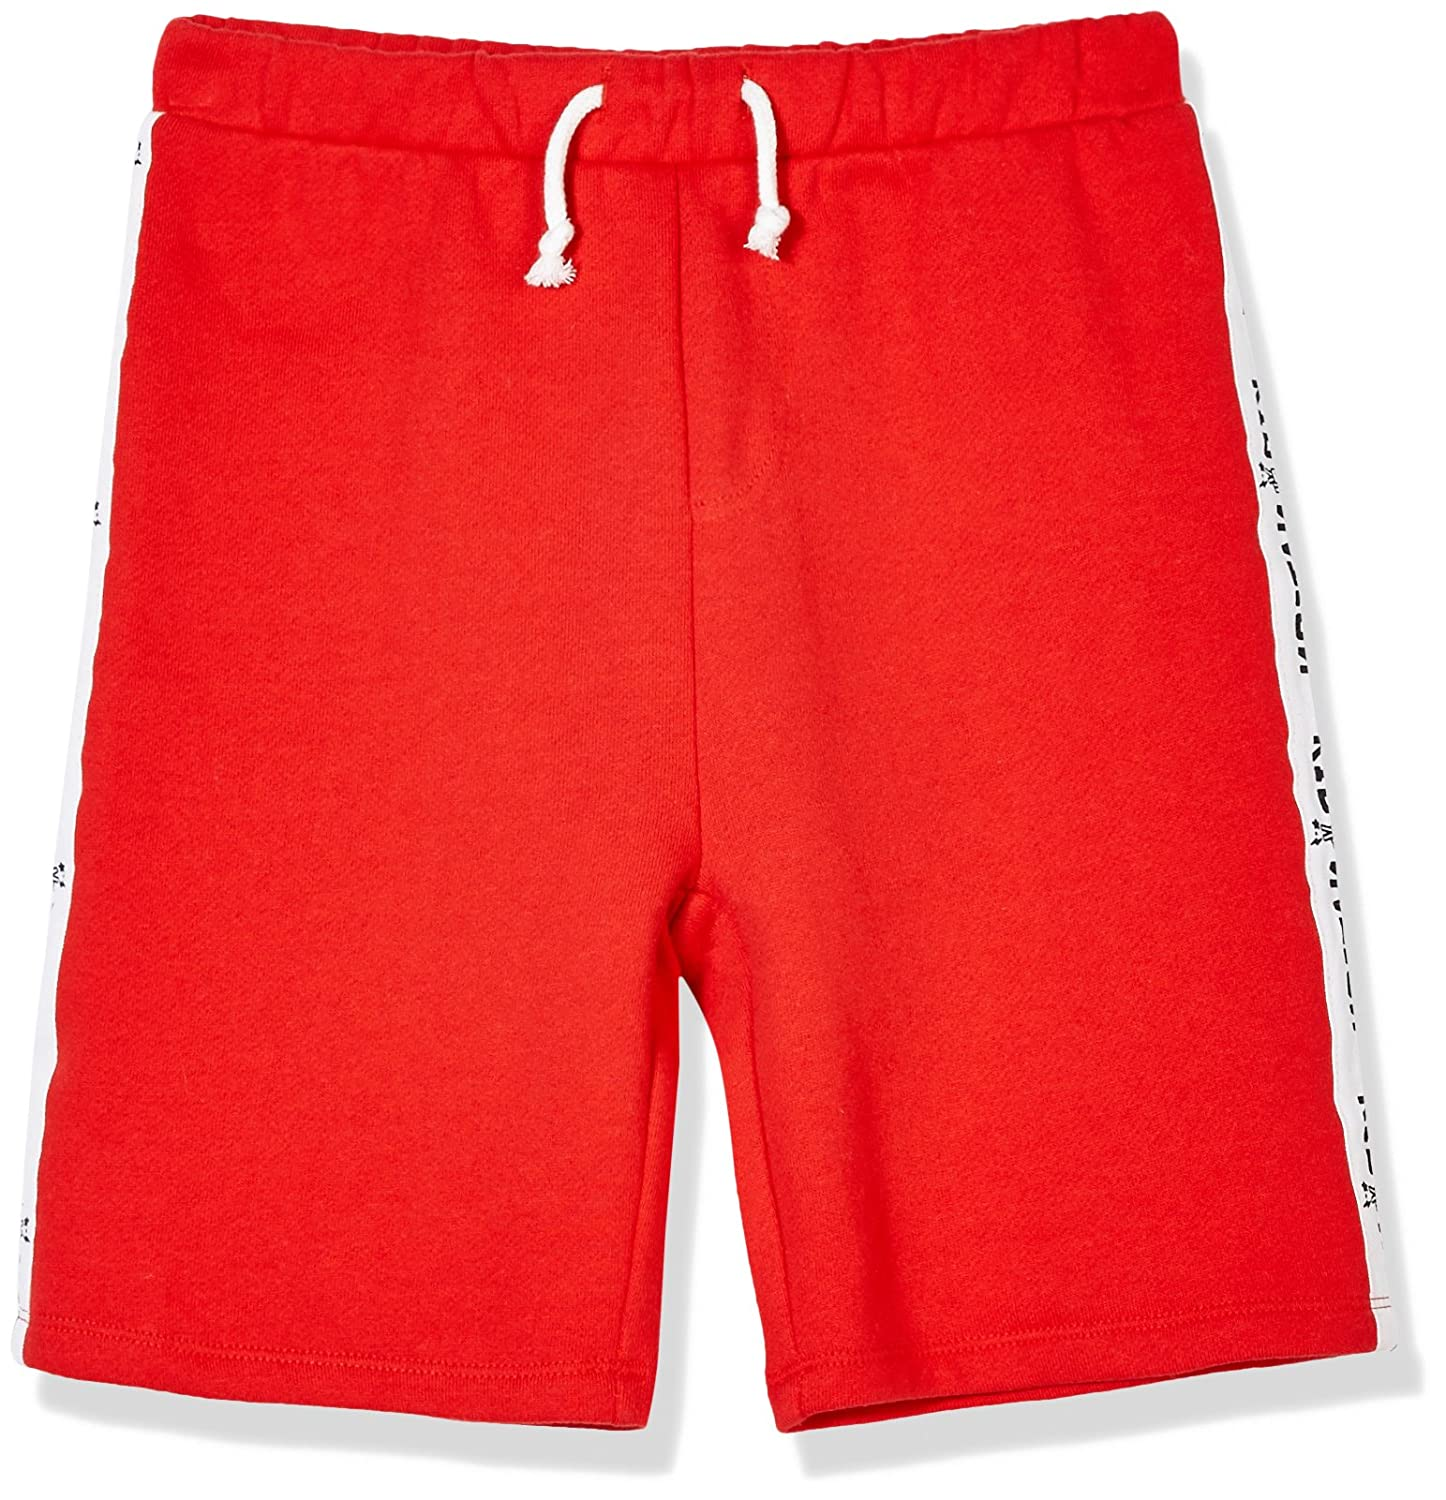 Kid Nation Kids' French Terry Elastic-Waist Short for Boys or Girls JIAYITANK27